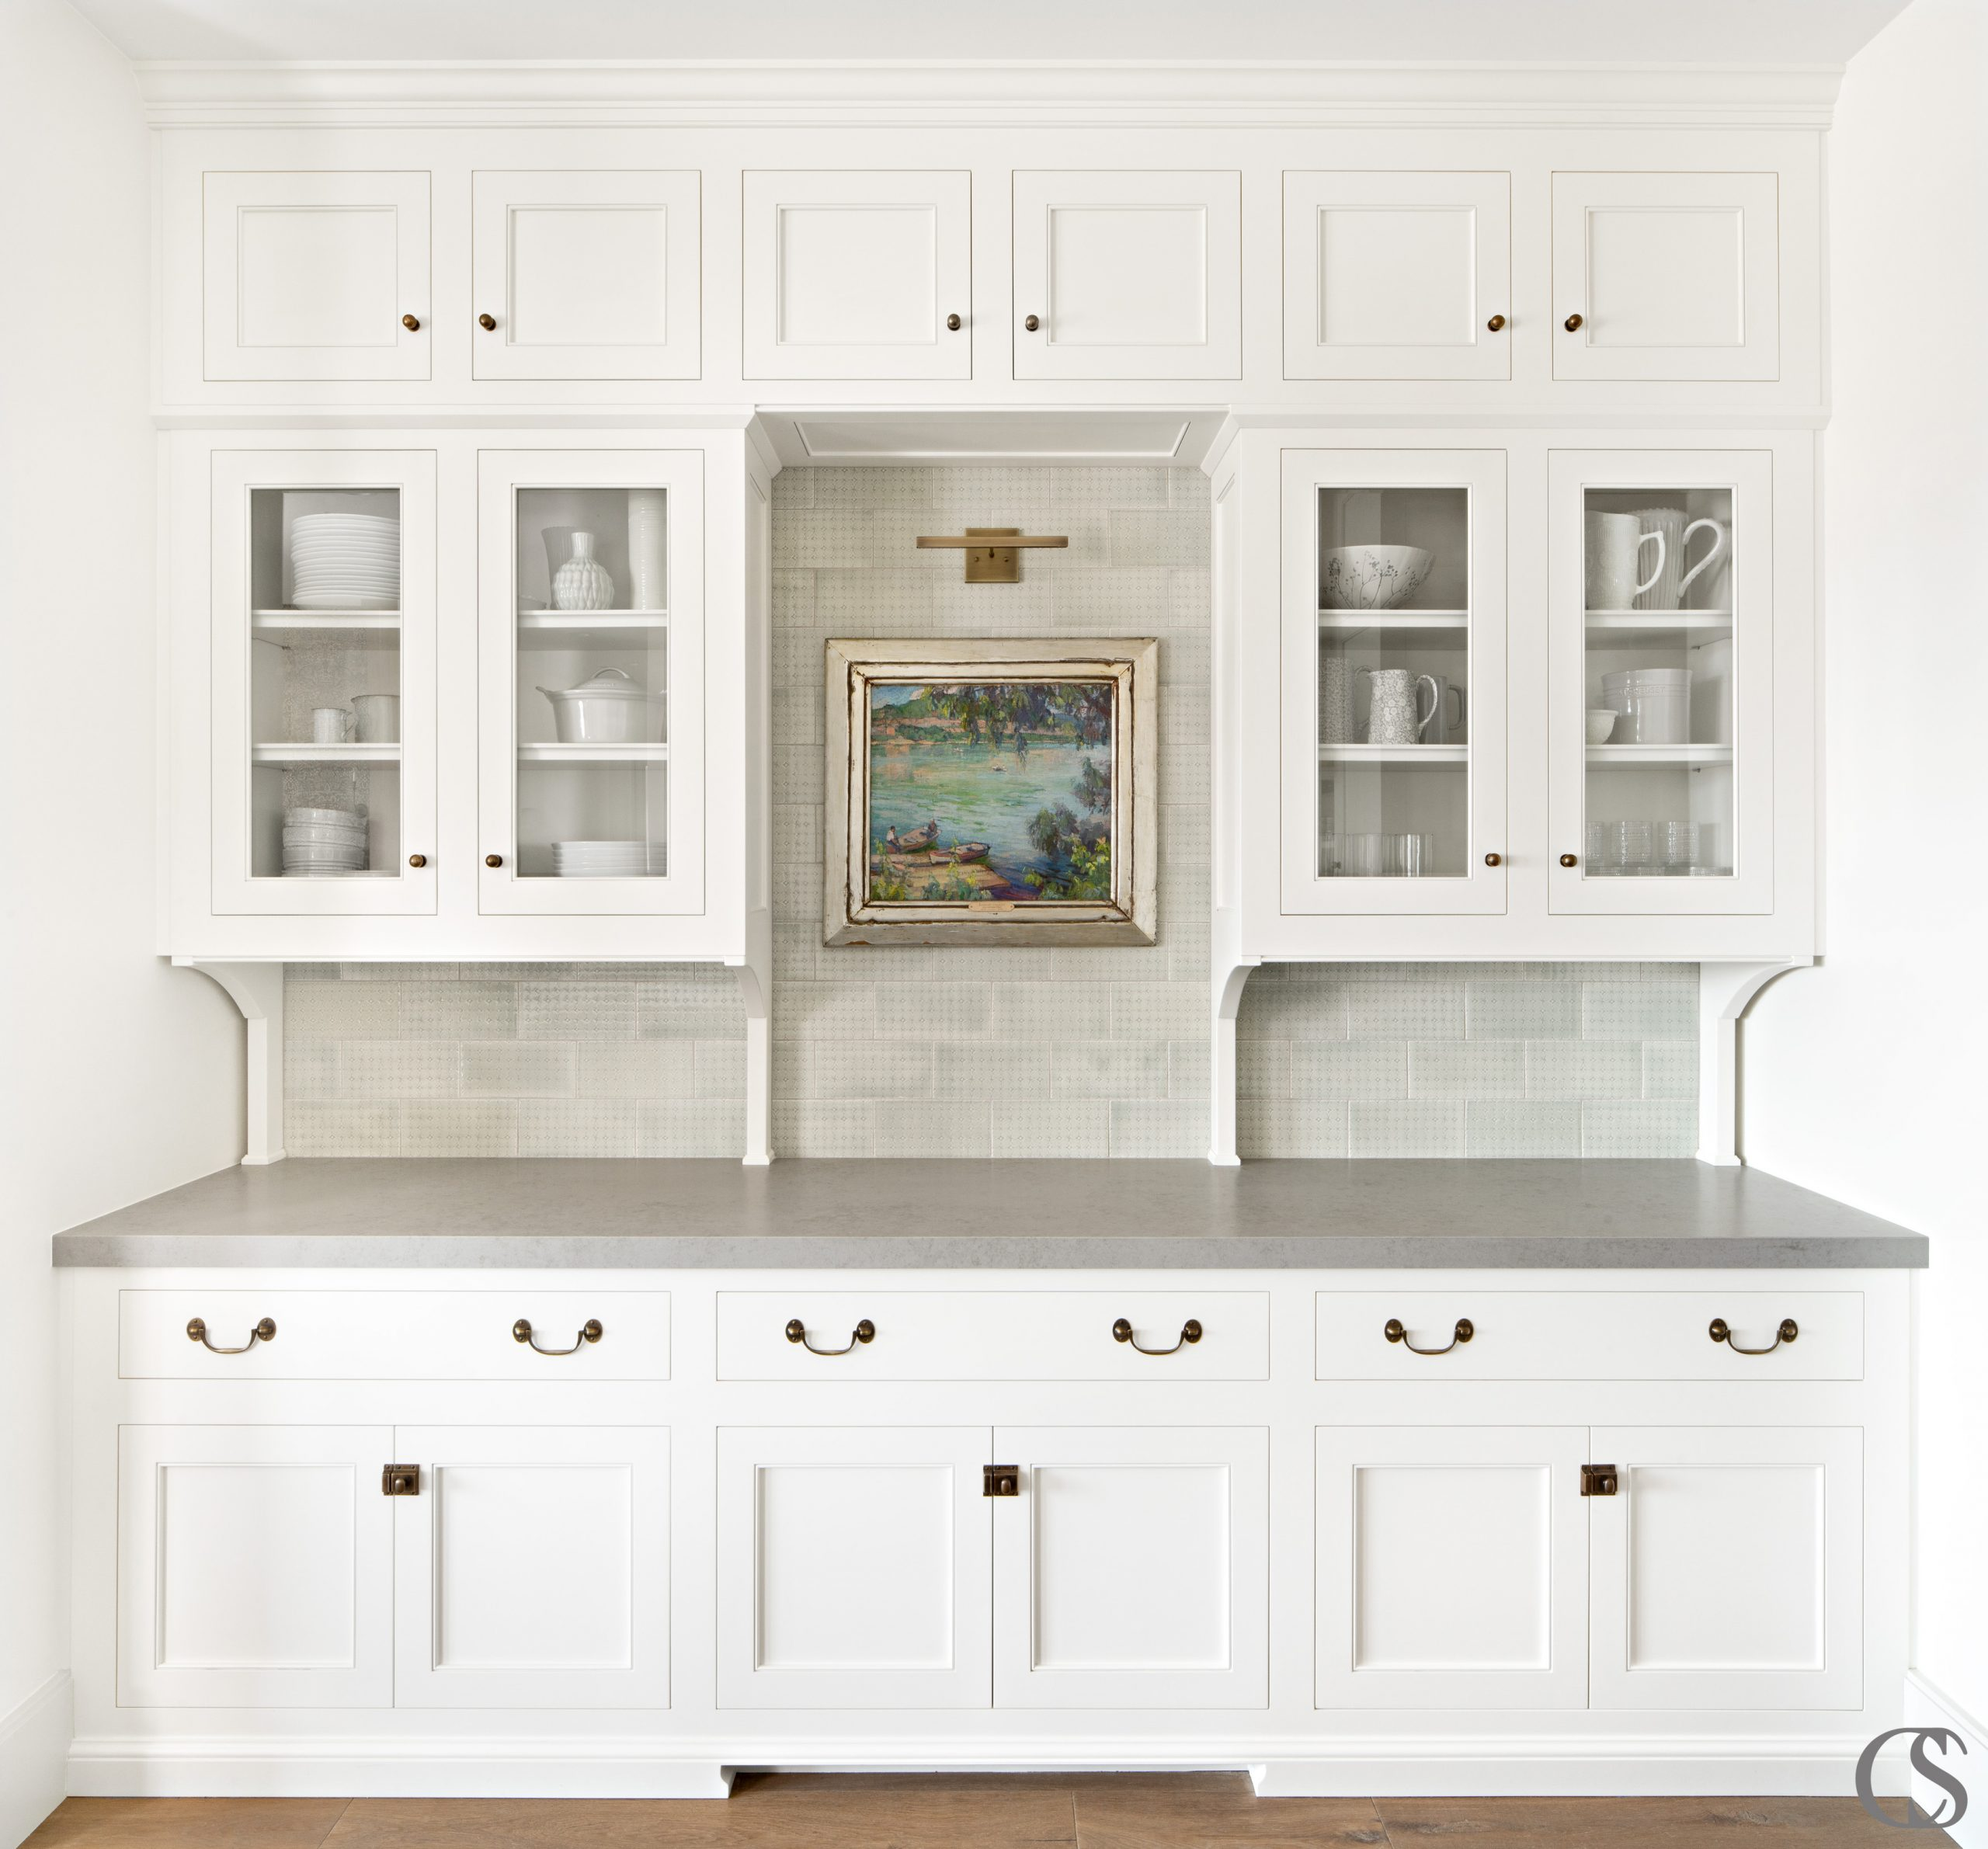 Why not allow for a little museum elegance in your beautiful custom kitchen? Display what's worthy of display, while still getting to tuck away the appliances and other gadgets.